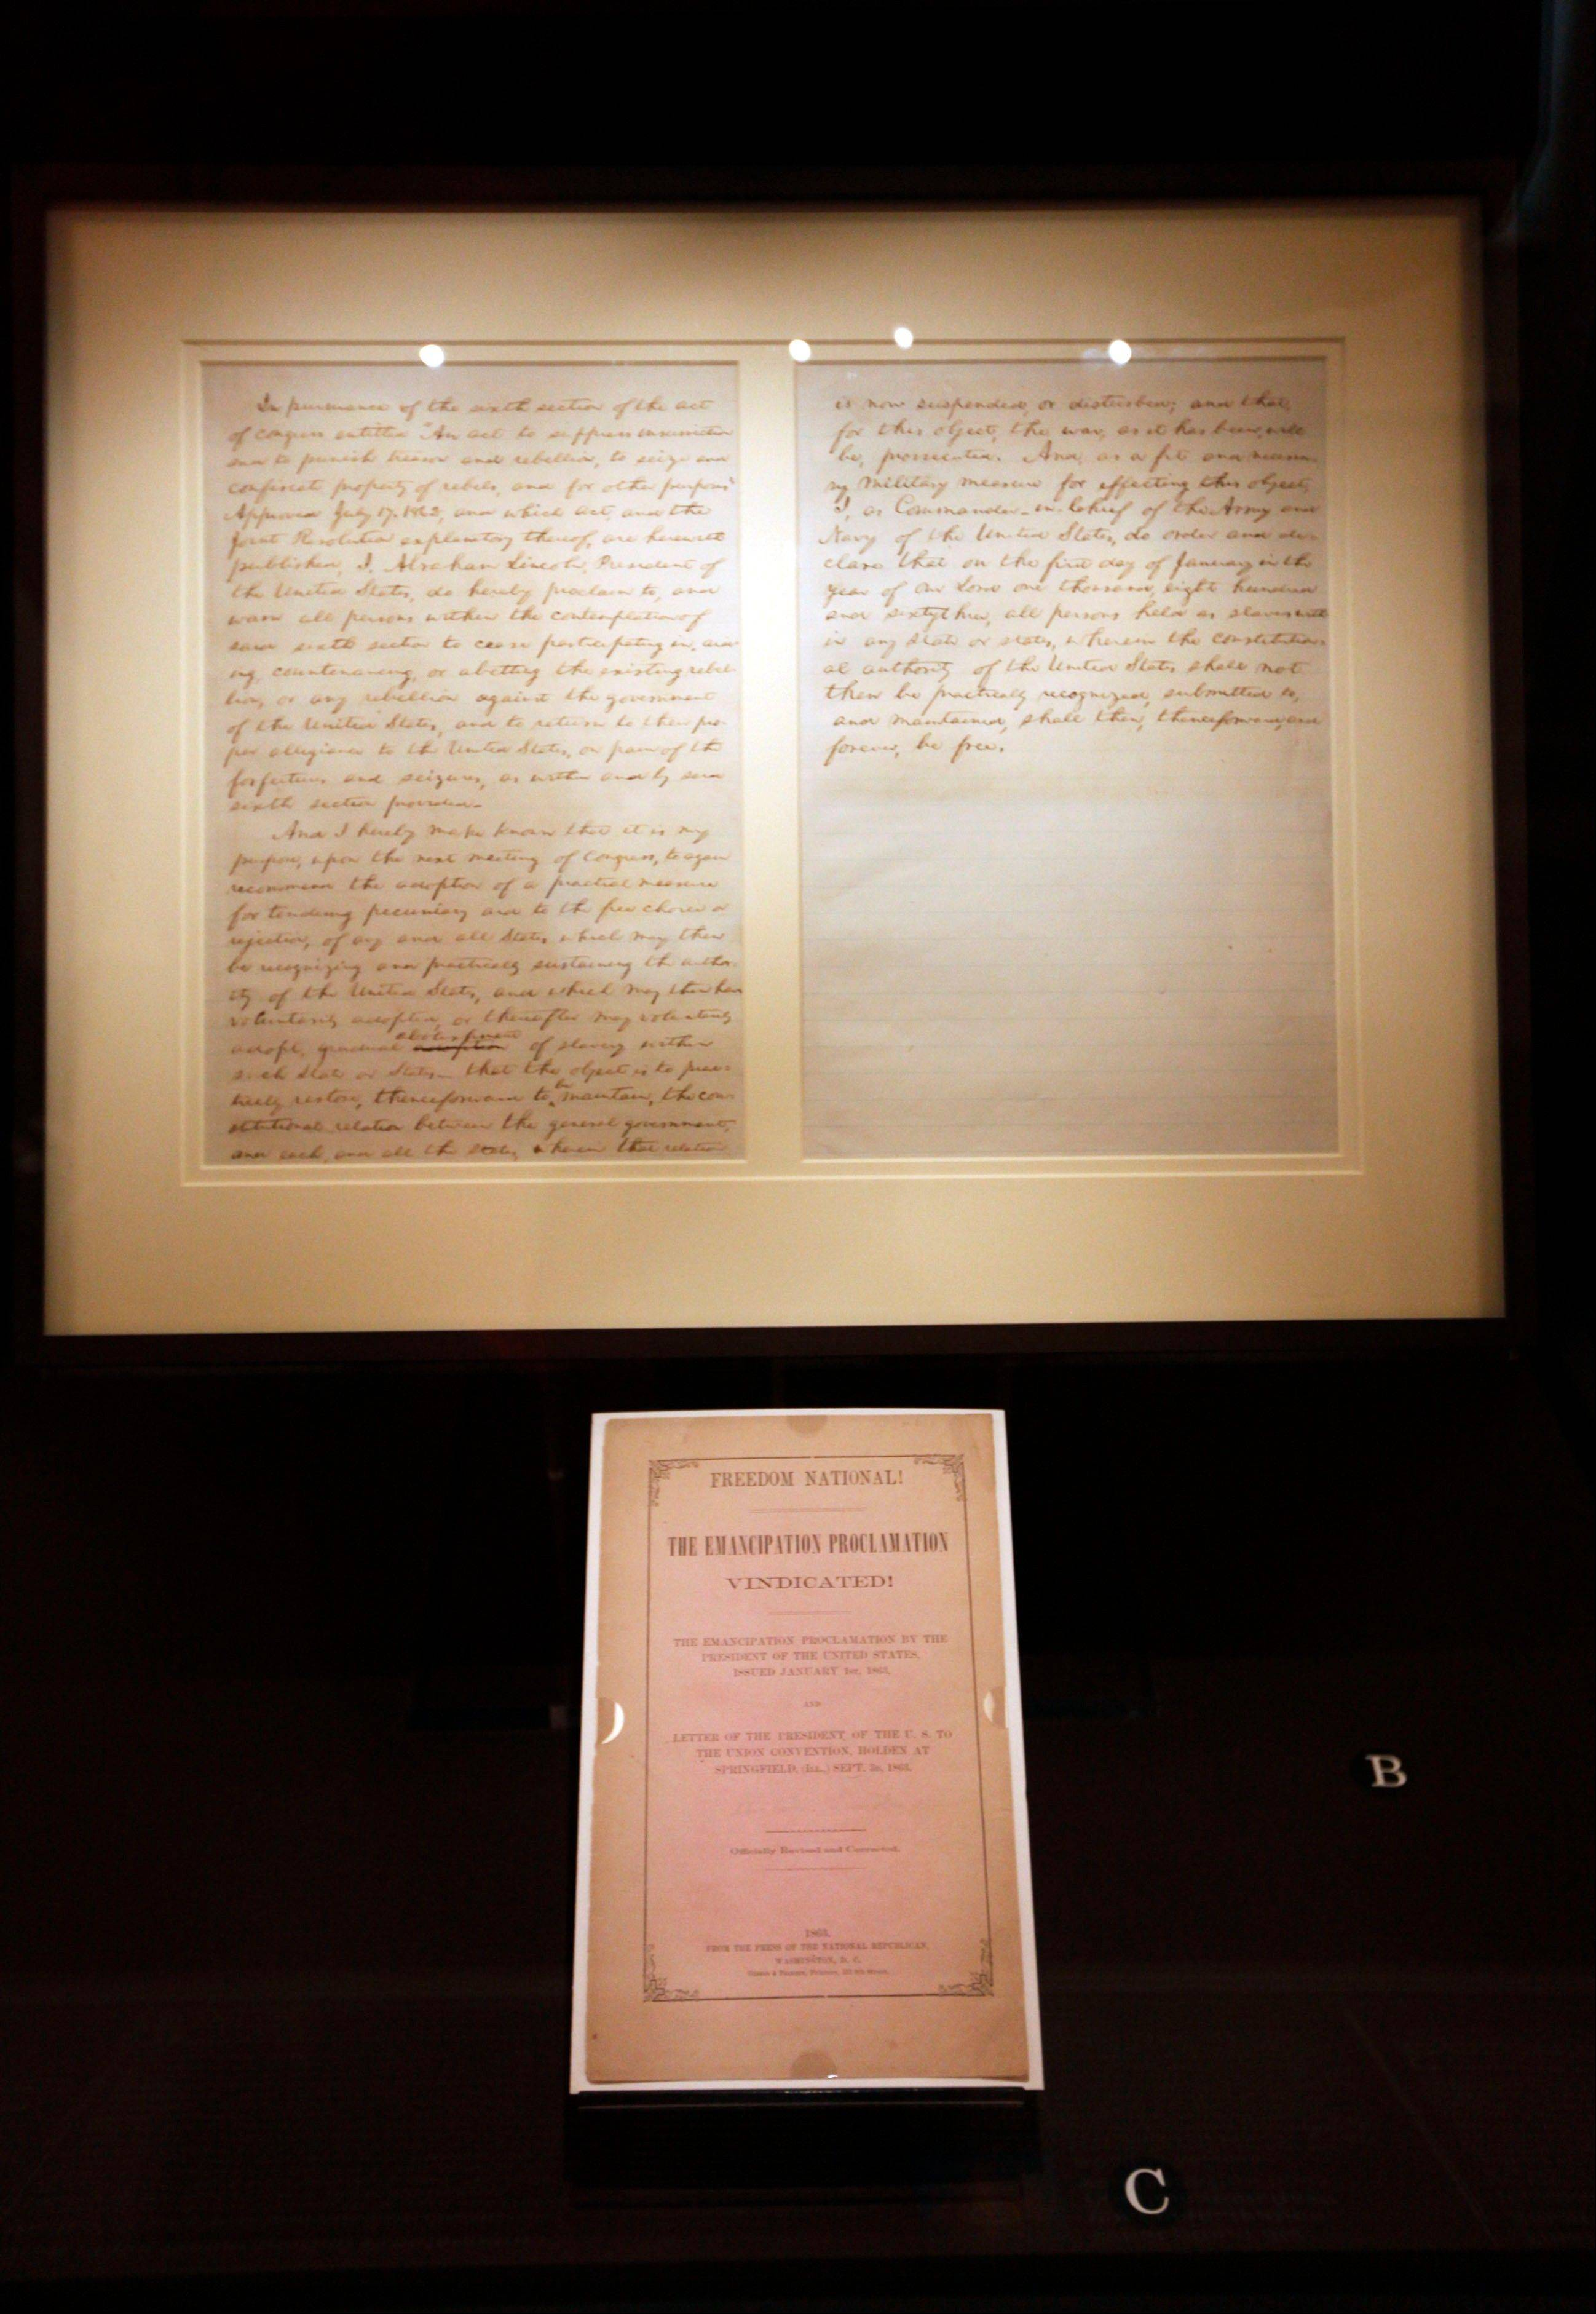 The first draft of President Abraham Lincoln's Emancipation Proclamation, which was presented to his full cabinet on July 22, 1862, is displayed at the Library of Congress in Washington.